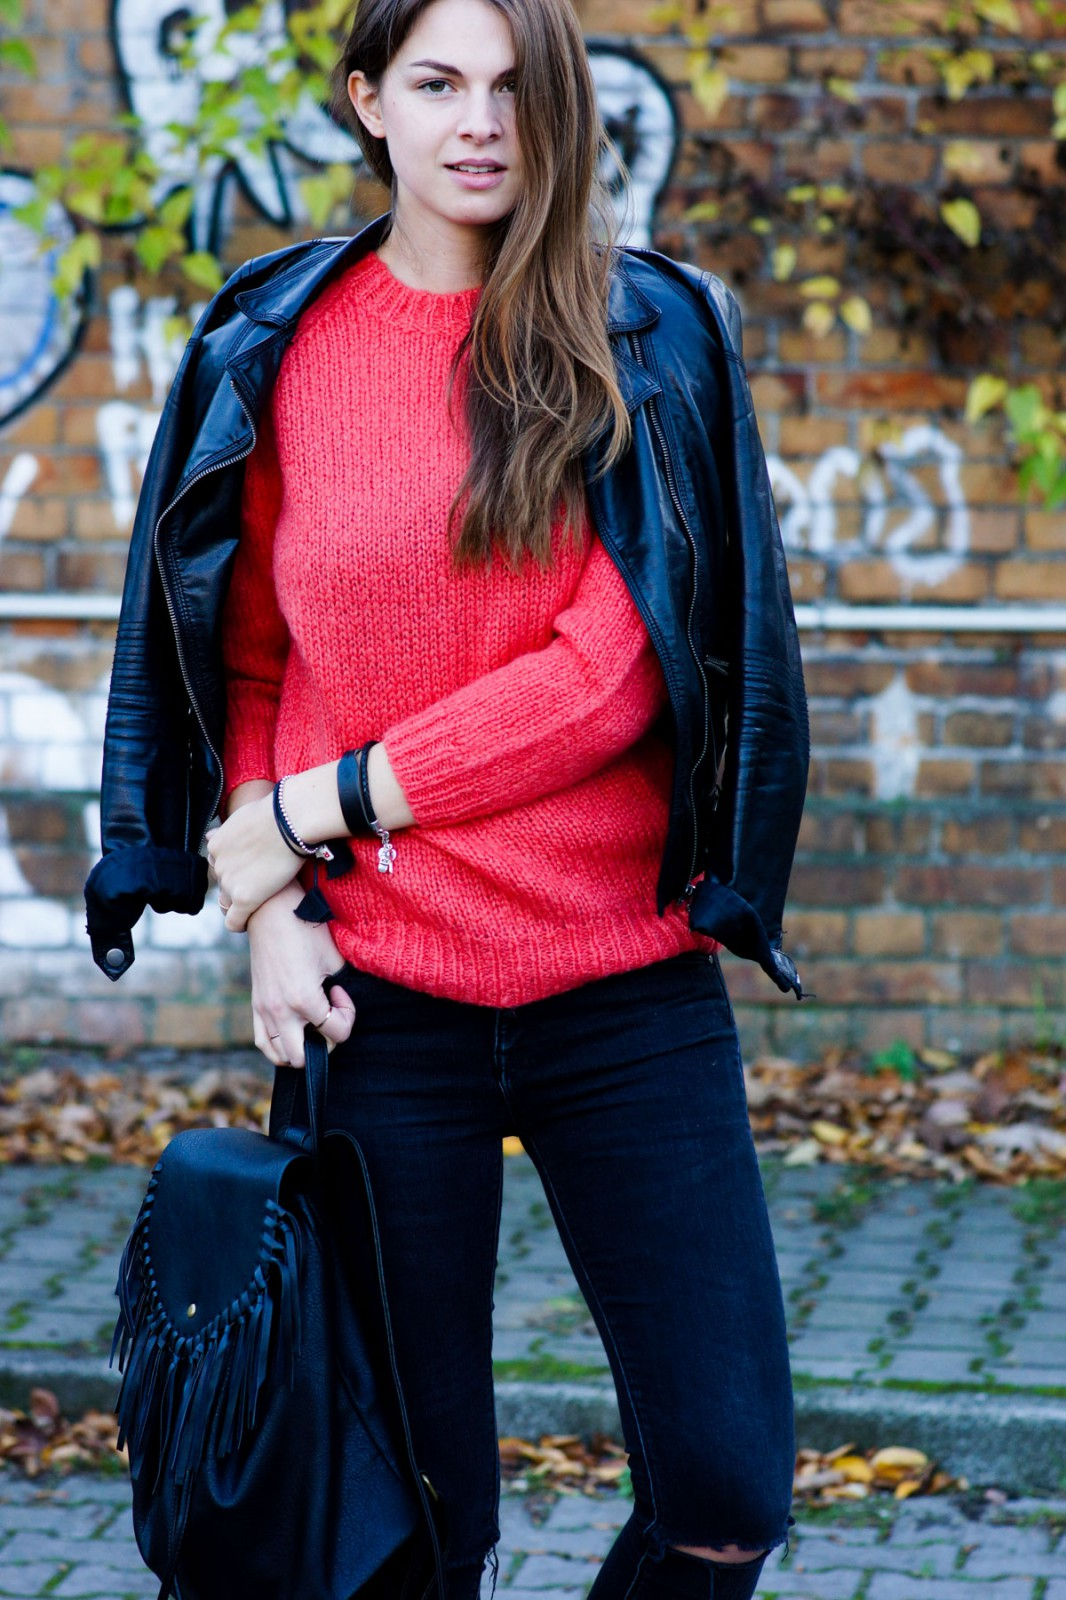 Herbst Outfit 2015